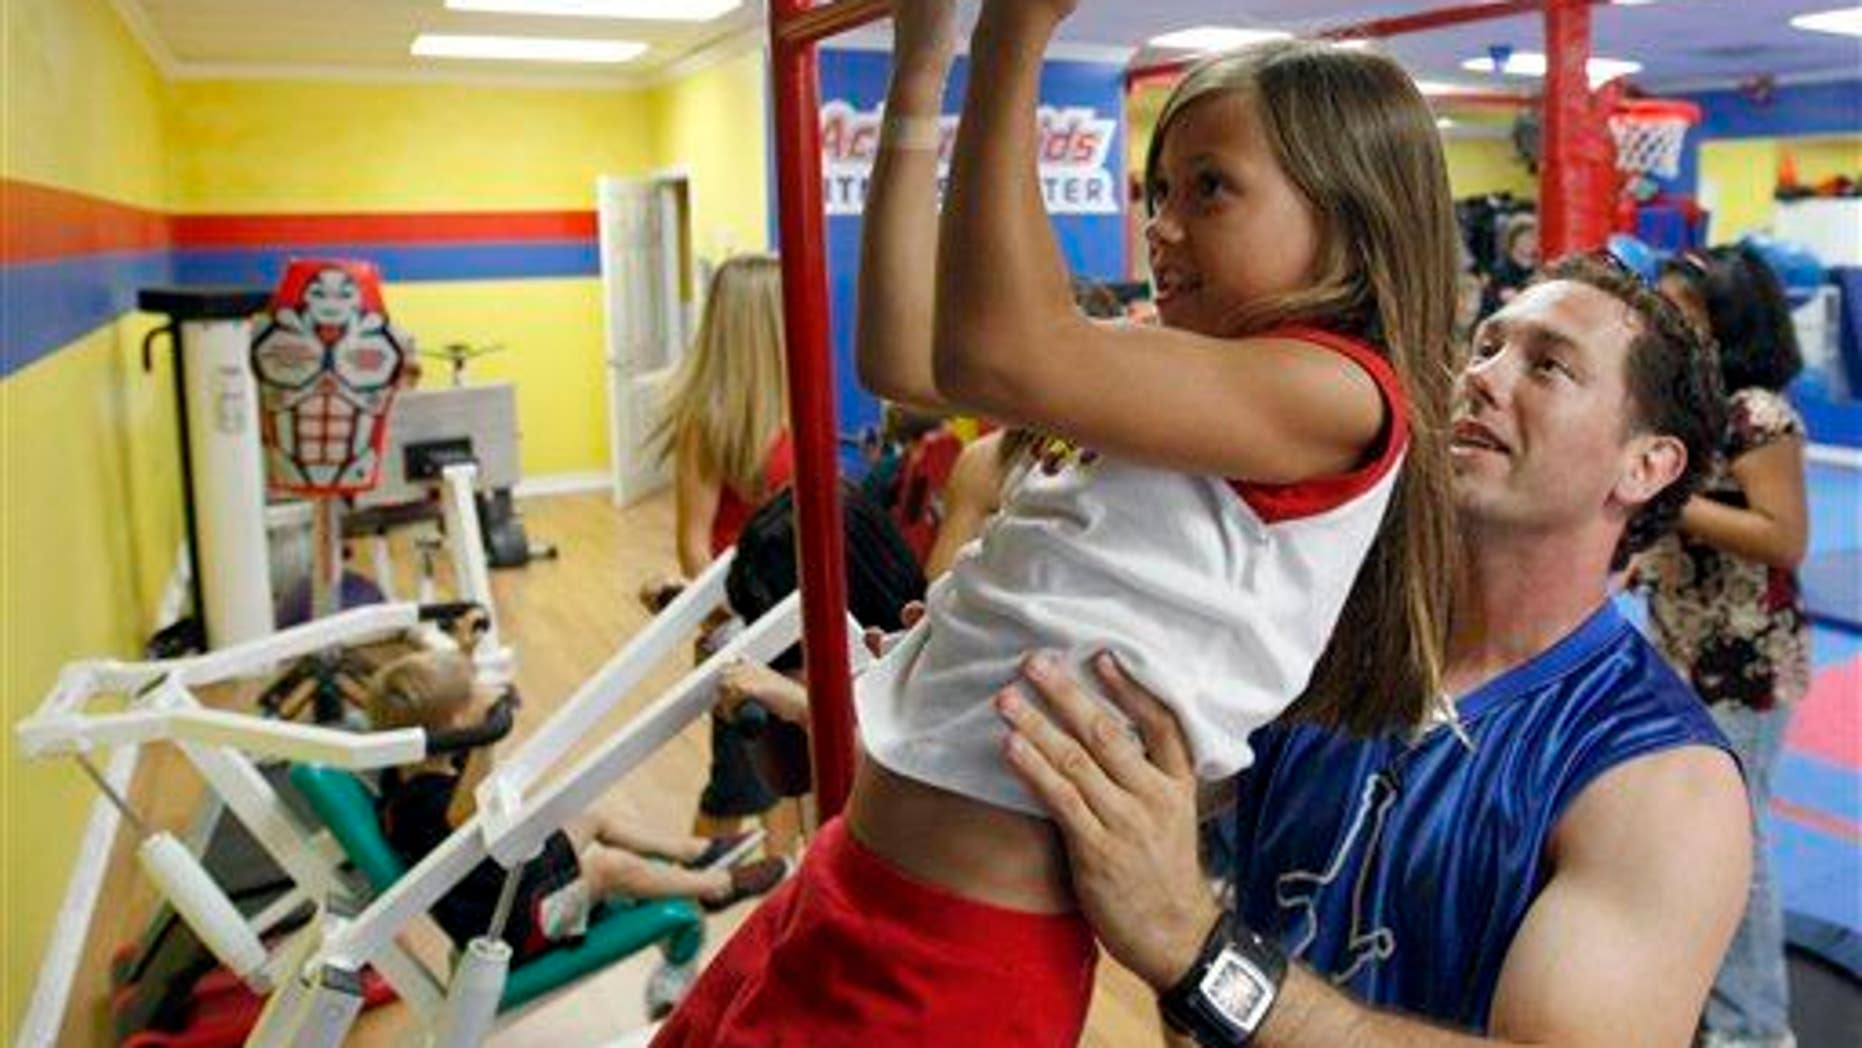 Action Fitness owner Steve Ewing, right, trains Kaela Ewing, 8, at the gym in Placentia, Calif., Tuesday, Aug. 12, 2008.